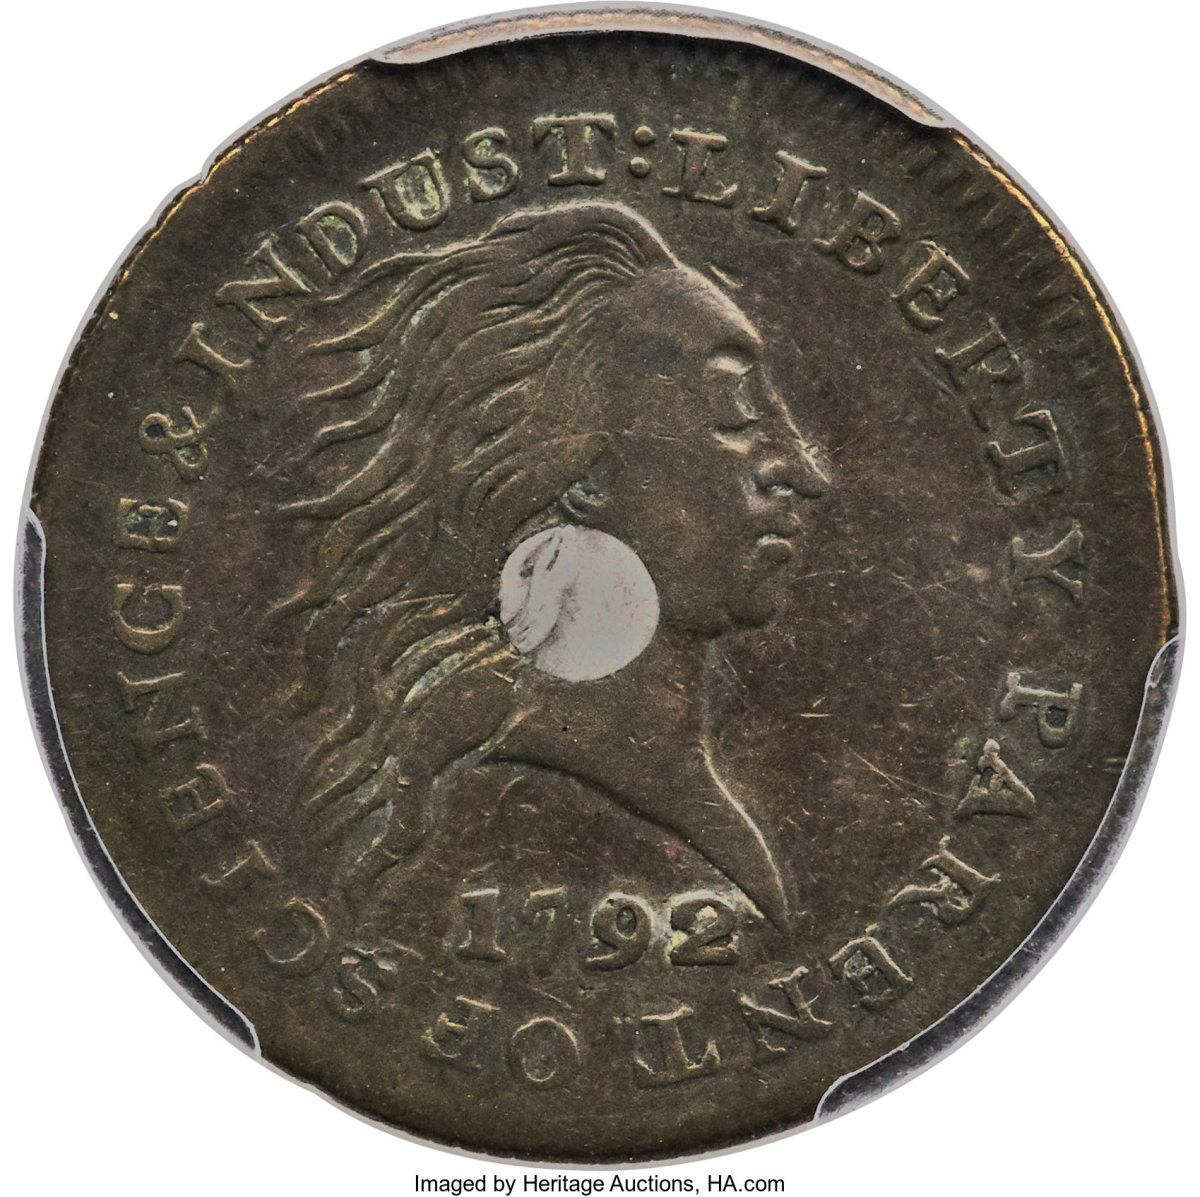 A 1792 Silver Center cent, graded SP35 by PCGS sold for $336,000.